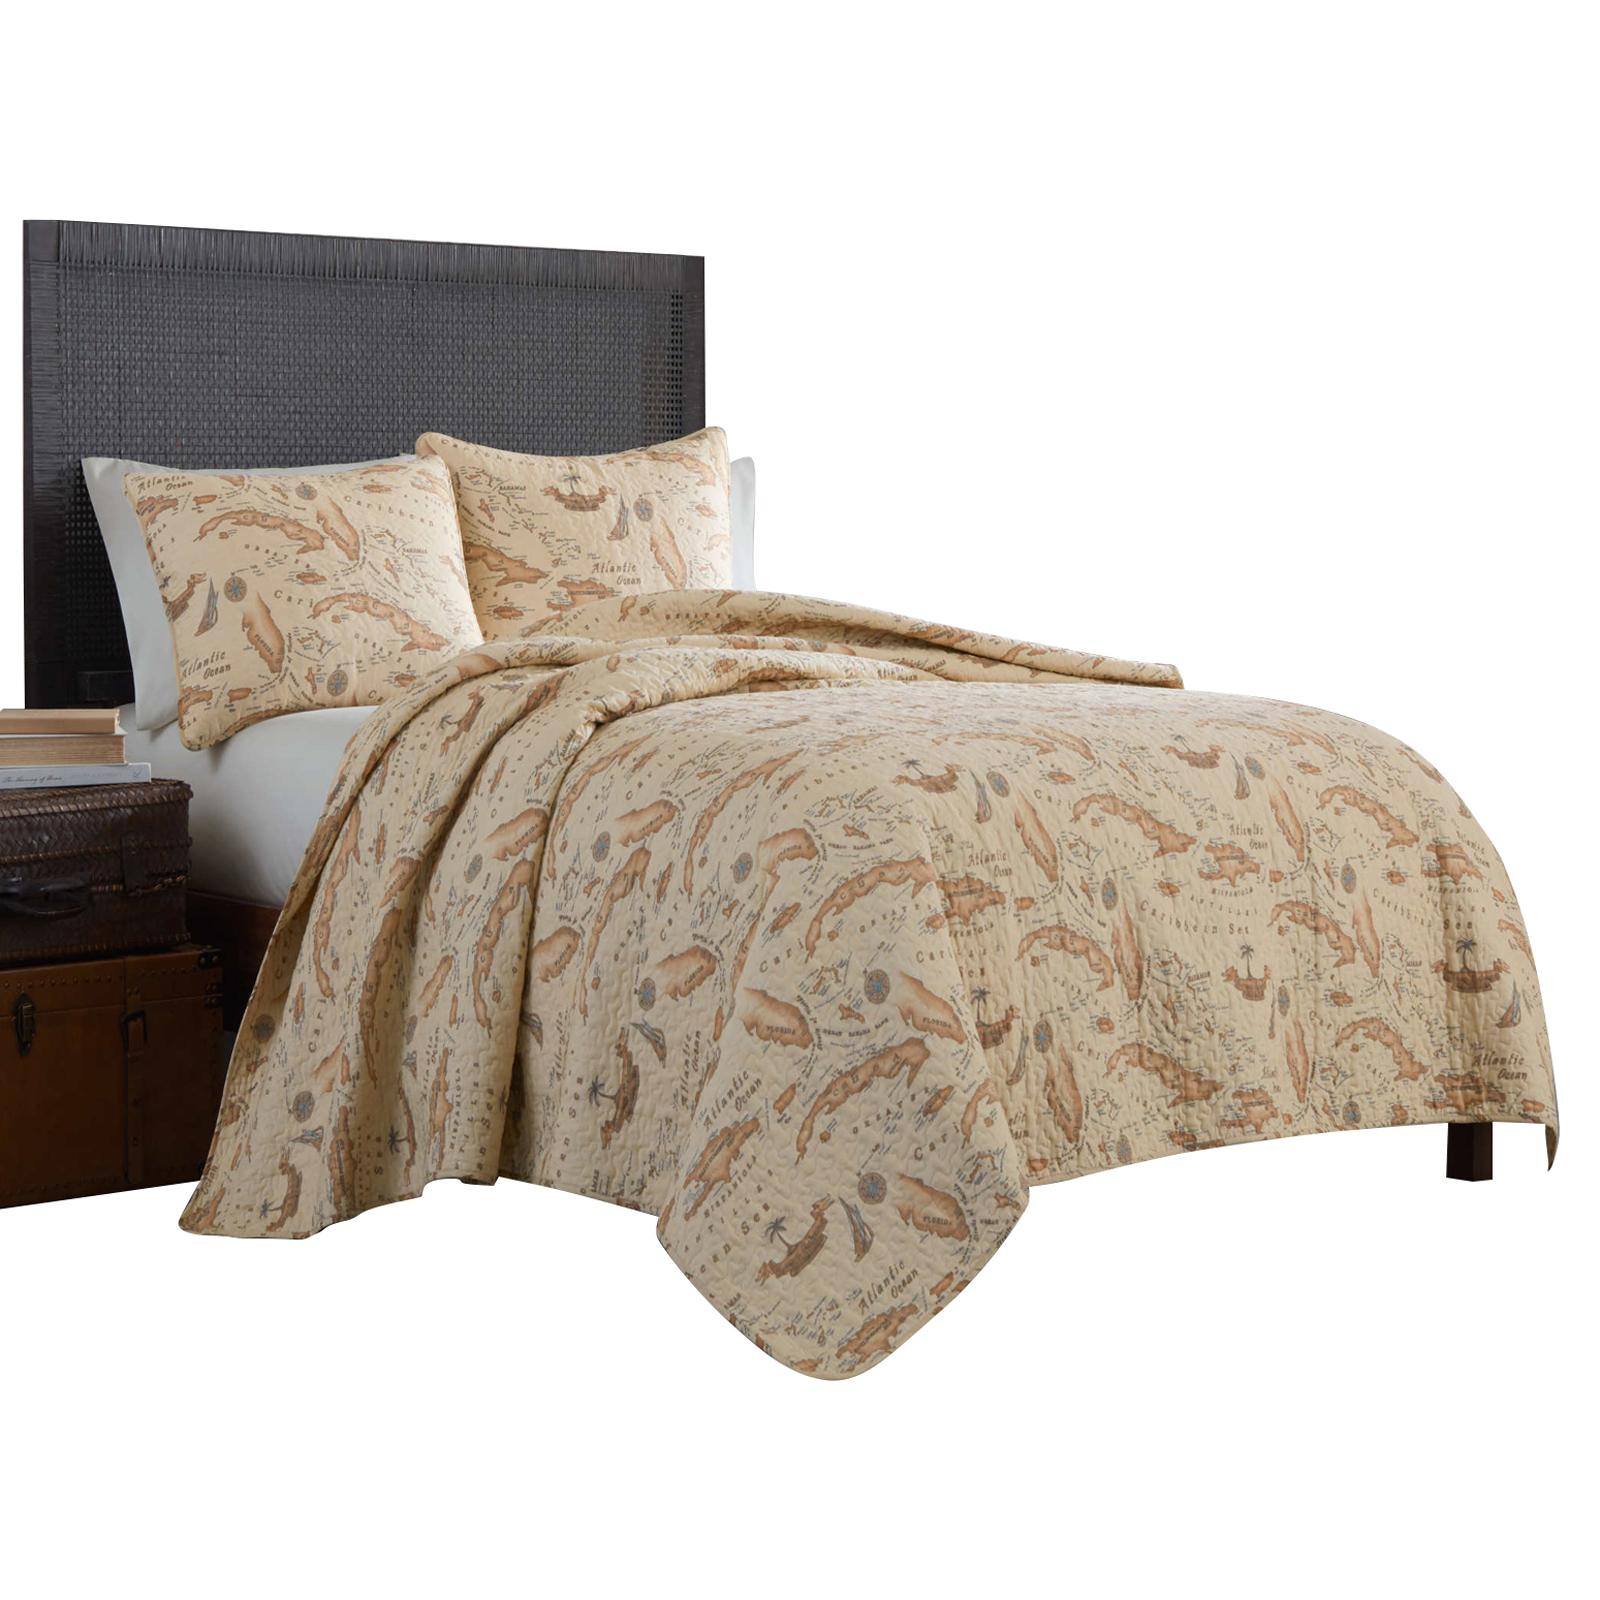 Tommy Bahama Caribbean Map Quilt Set - 187051